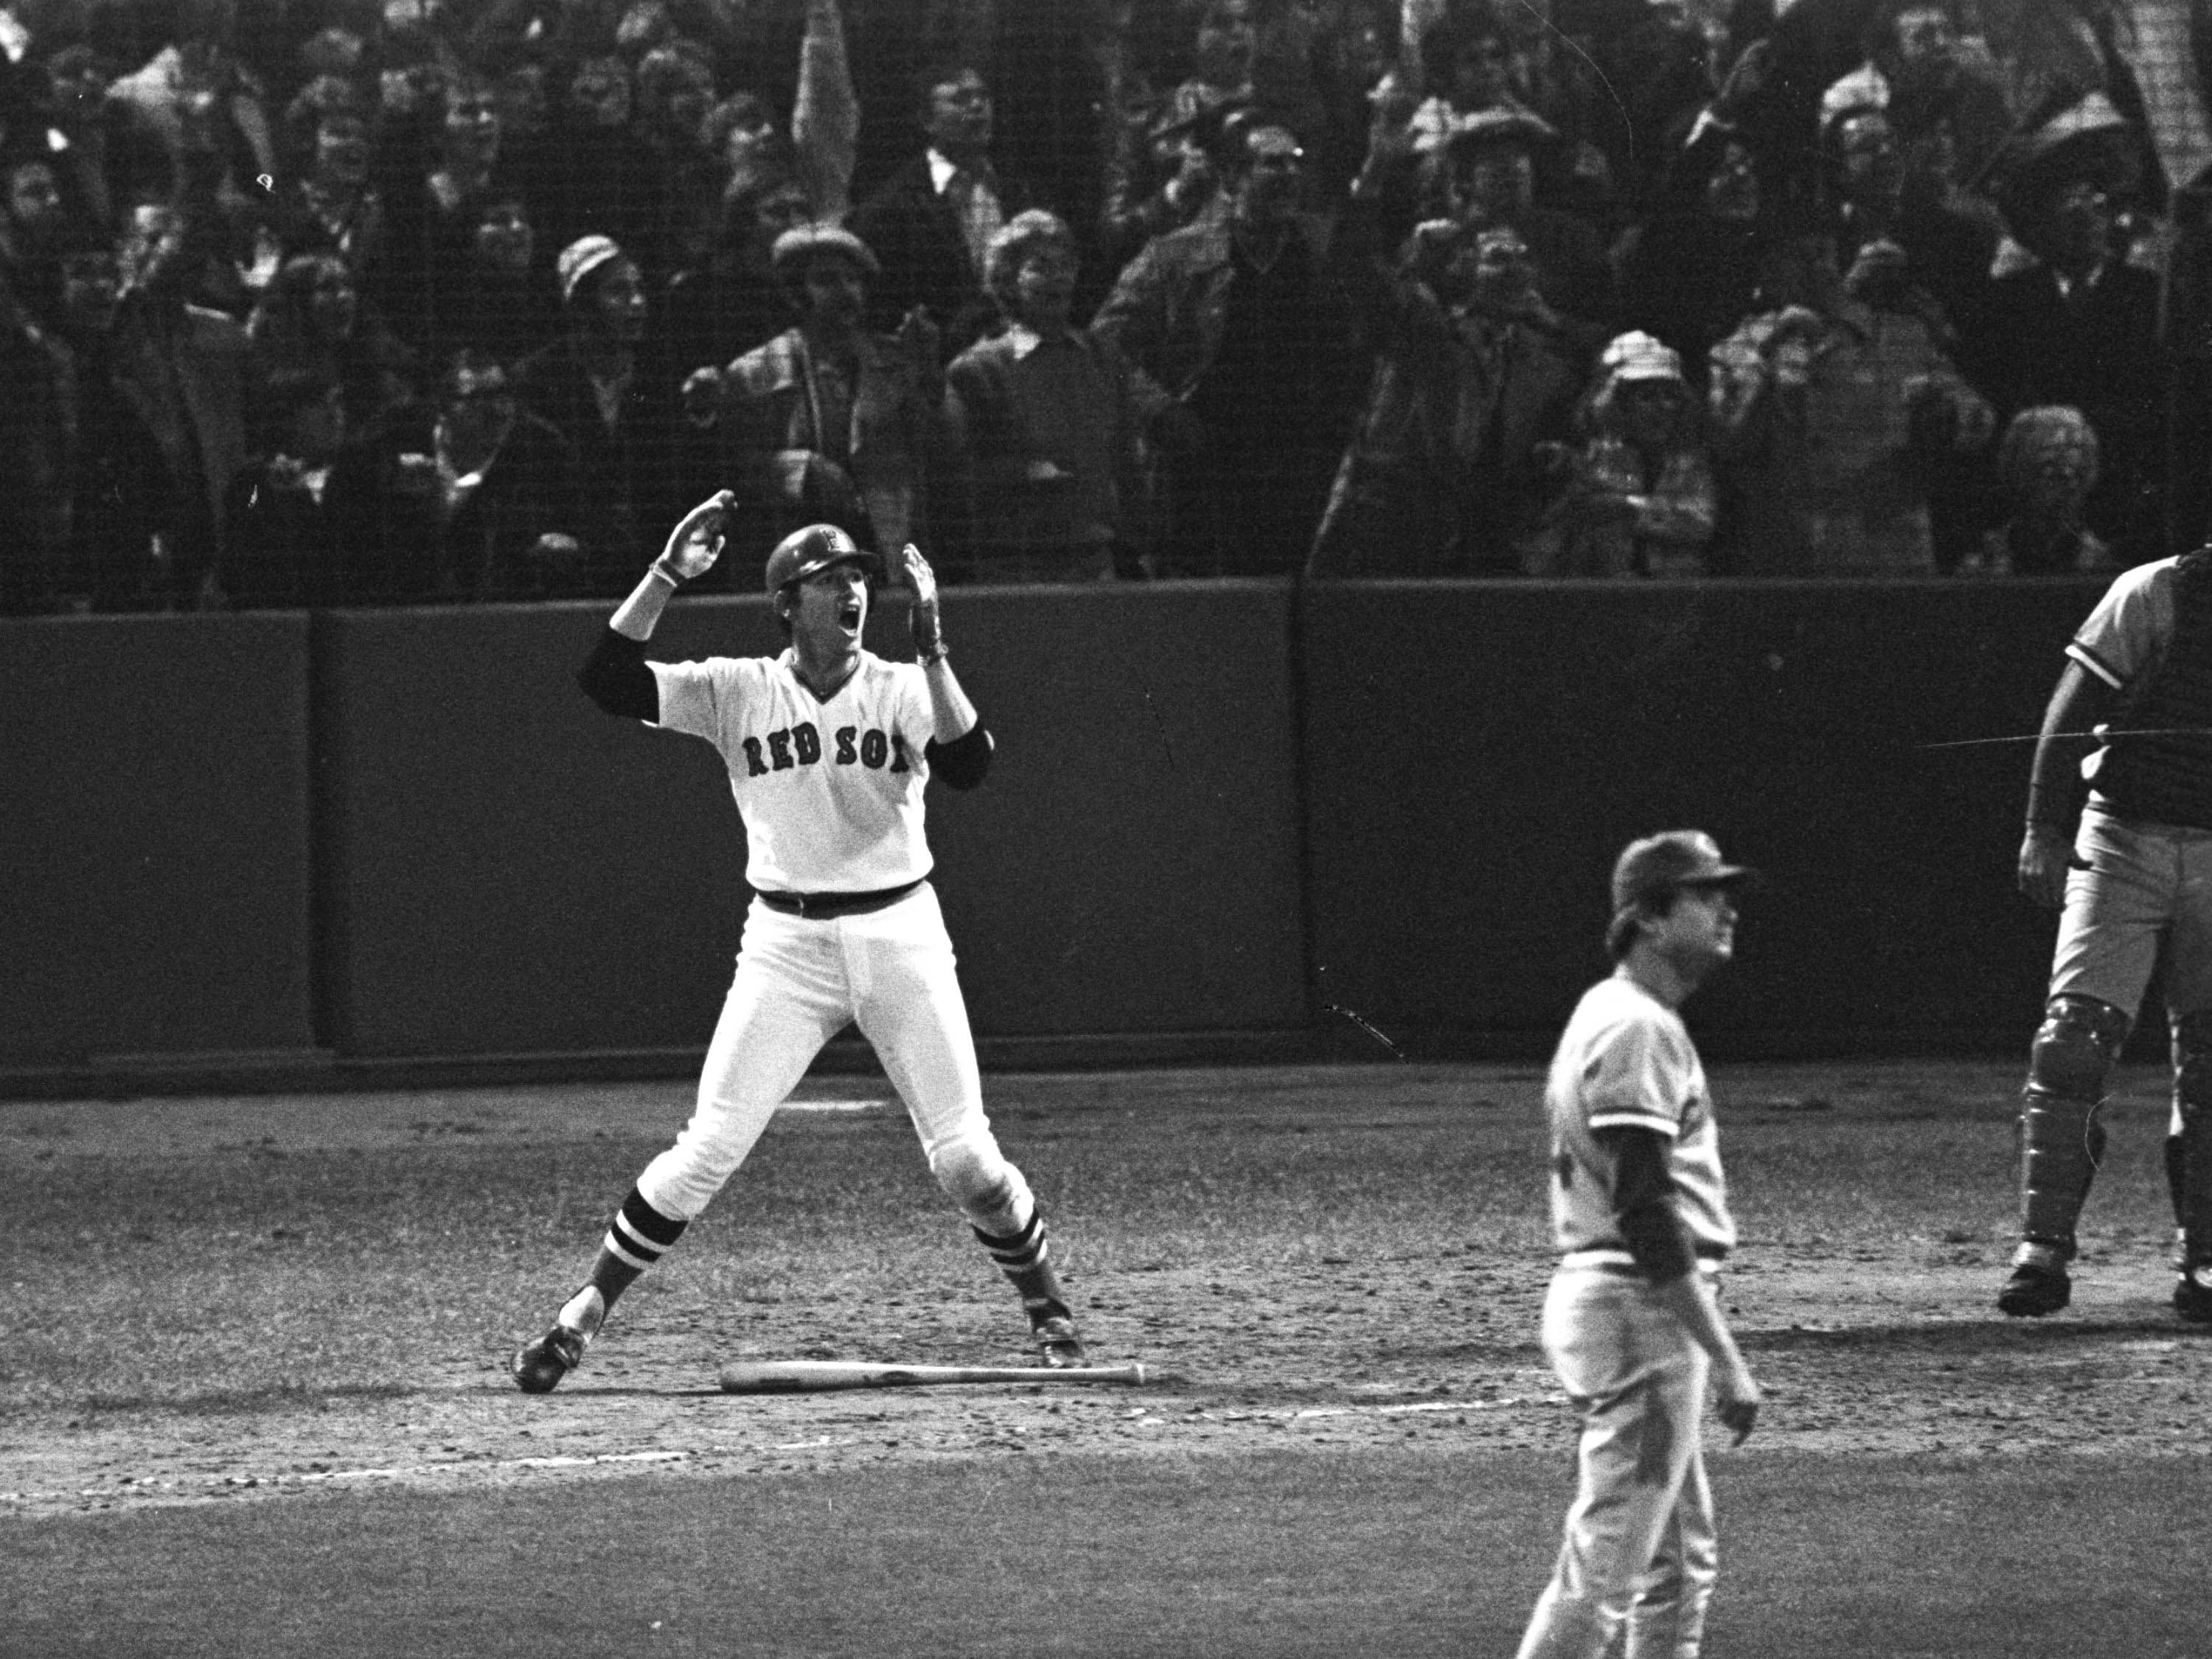 Oct. 22, 1975: Game 6, bottom of the 12th, Carlton Fisk at bat. He hits a walk-off home run that pushes for a game 7 against the Cincinnati Reds.  Fisk's home run extended the Red Sox dream of breaking the curse of the Bambino.